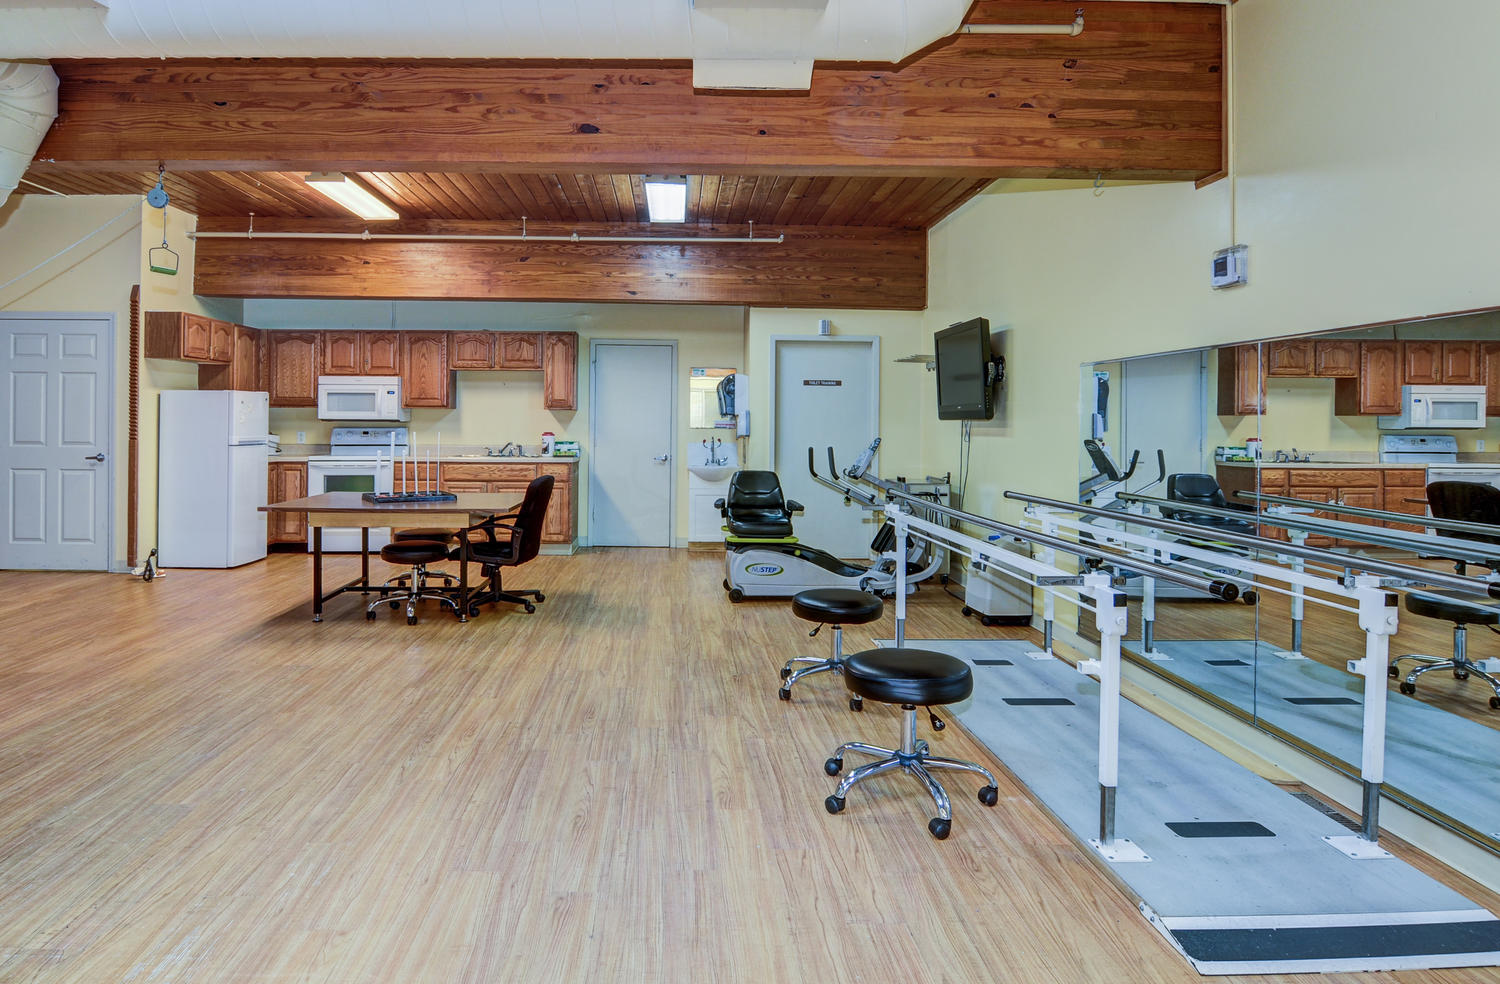 View of Stonerise Parkersburg Therapy and Rehabilitation equipment and kitchen area